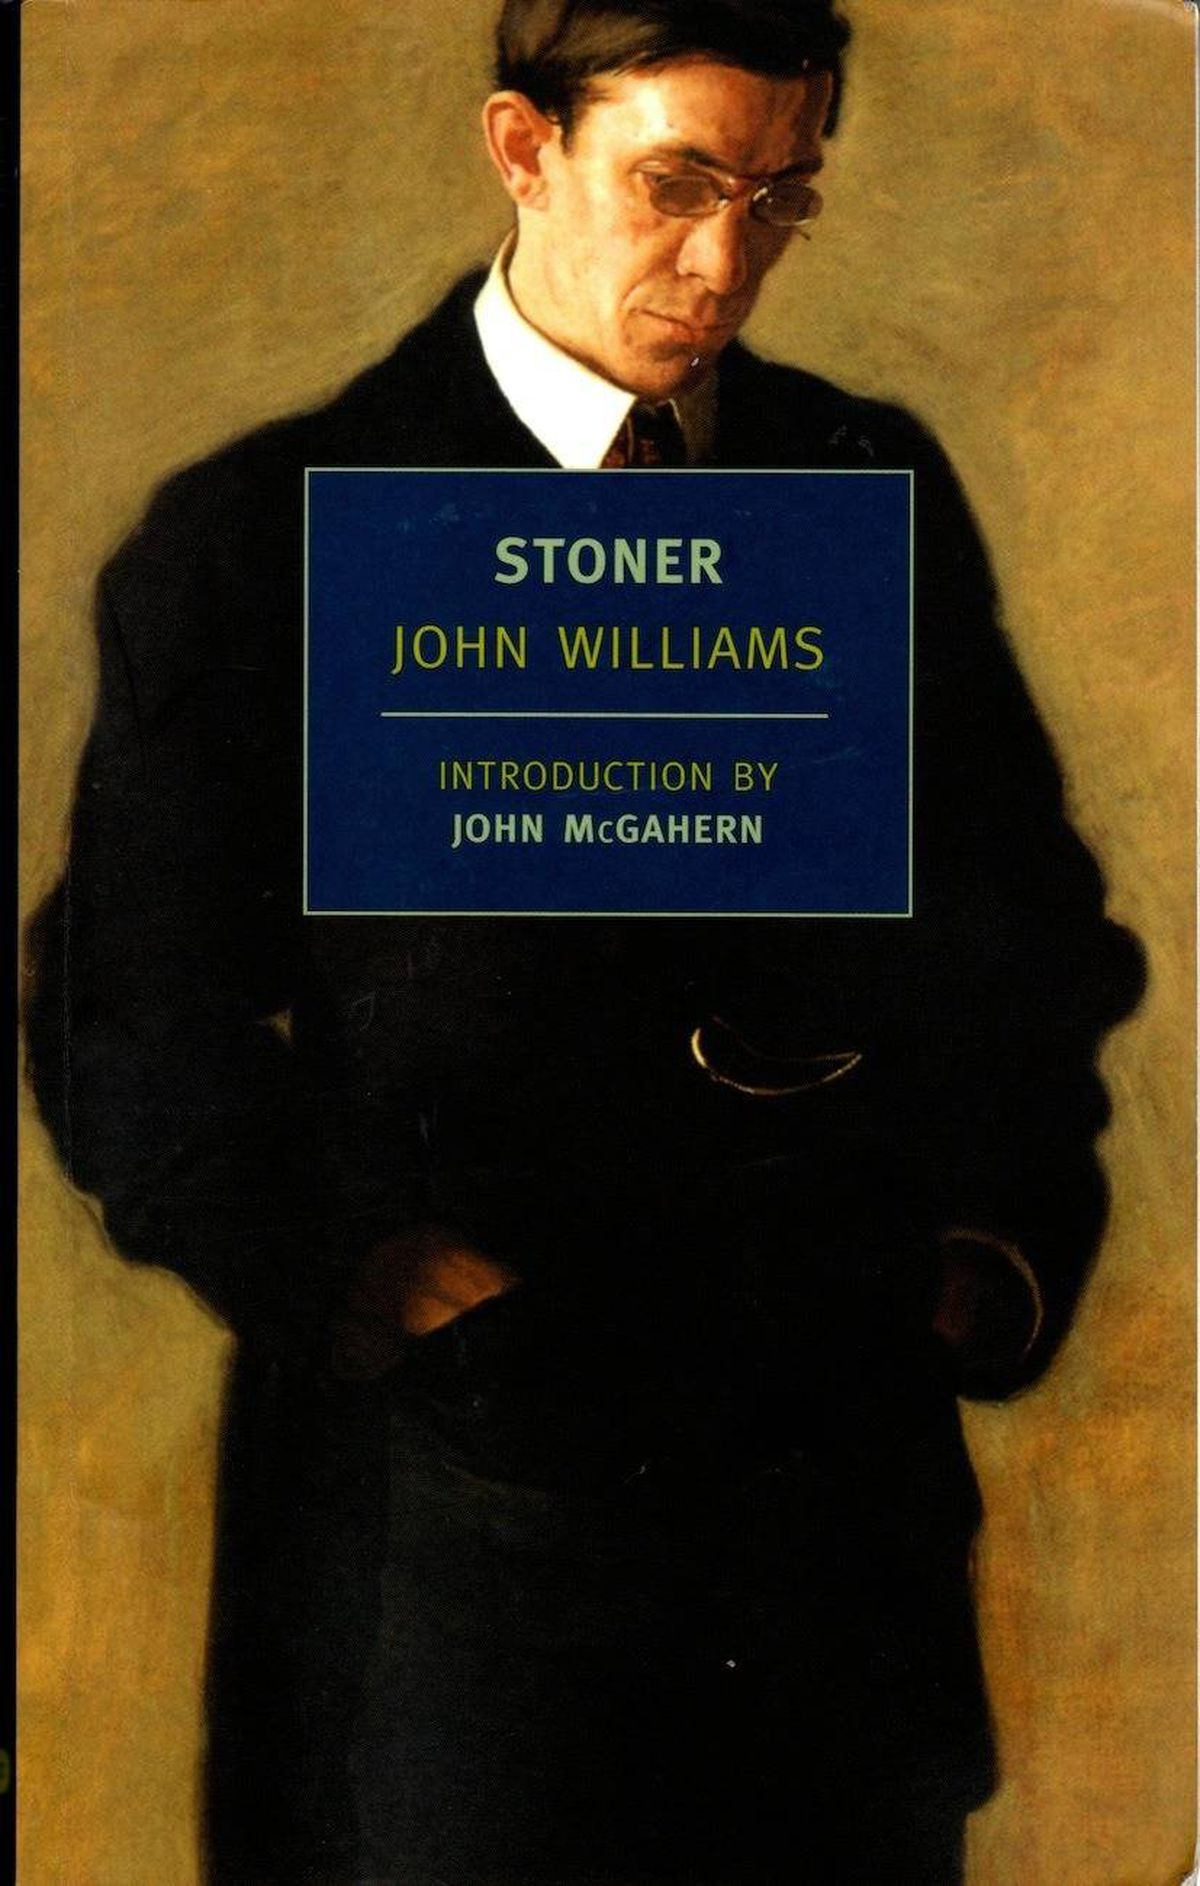 Image result for stoner john williams cover